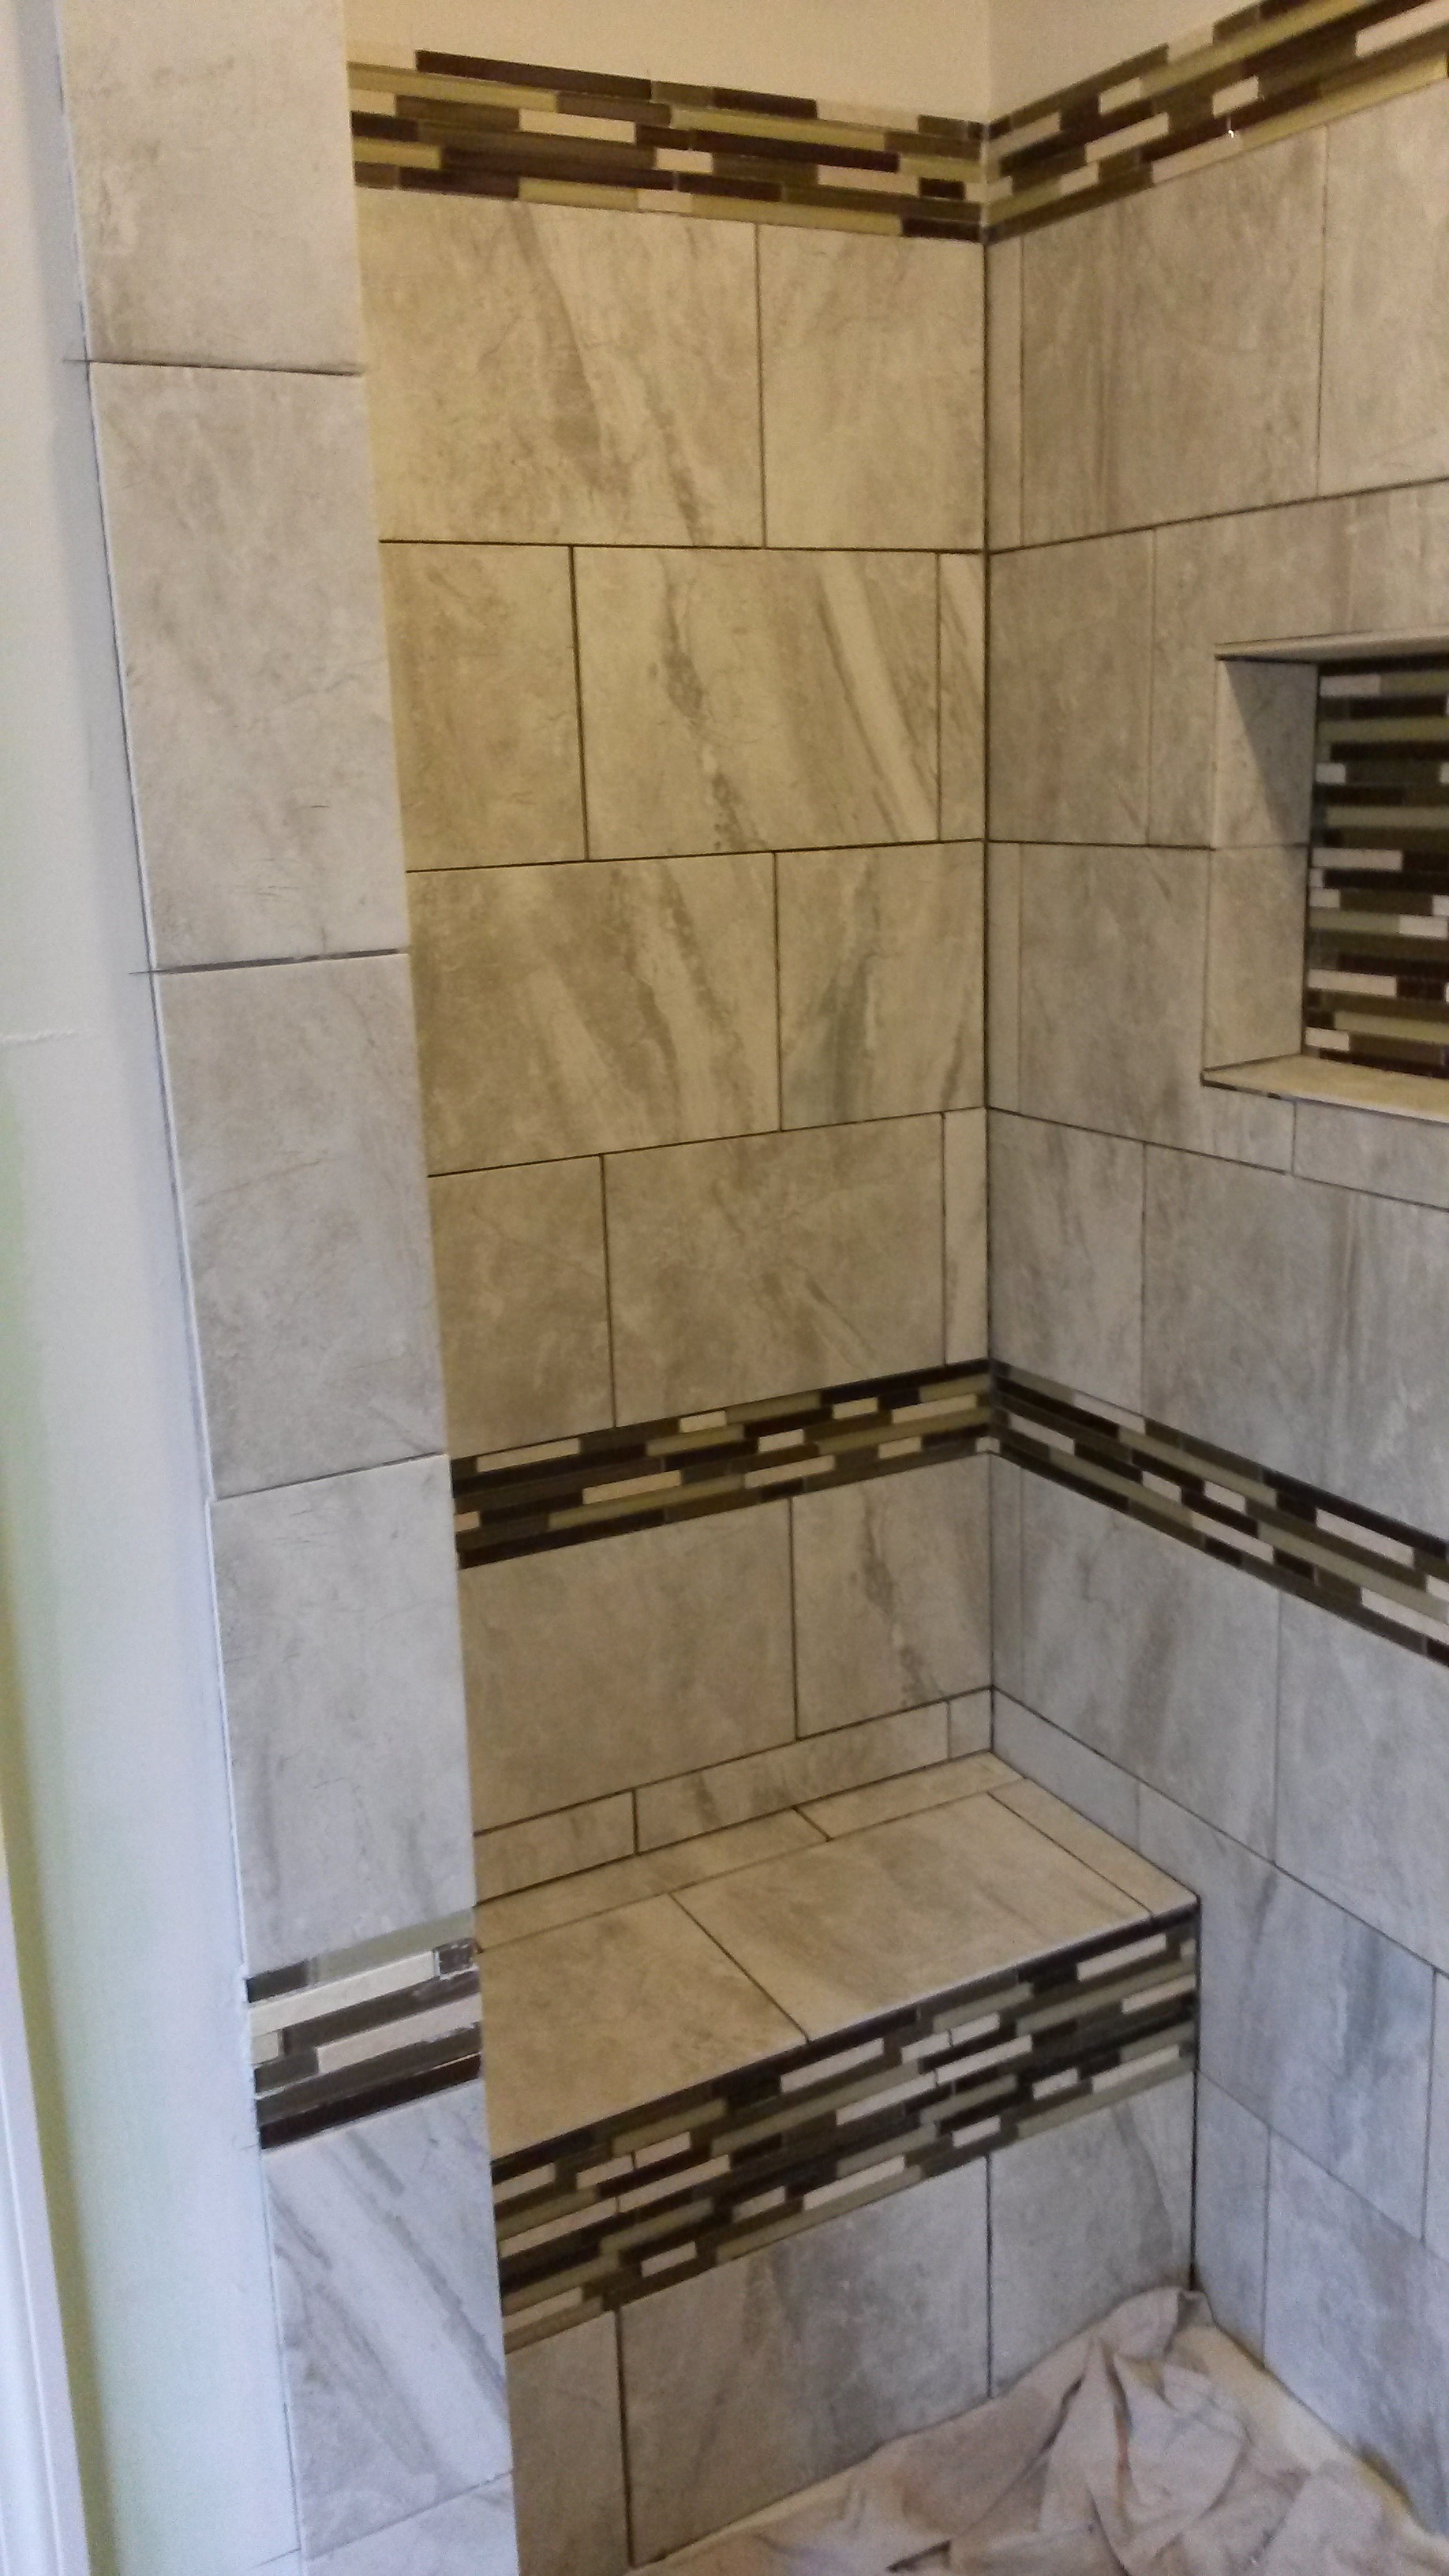 Tile work in bathrooms - Shower Tile